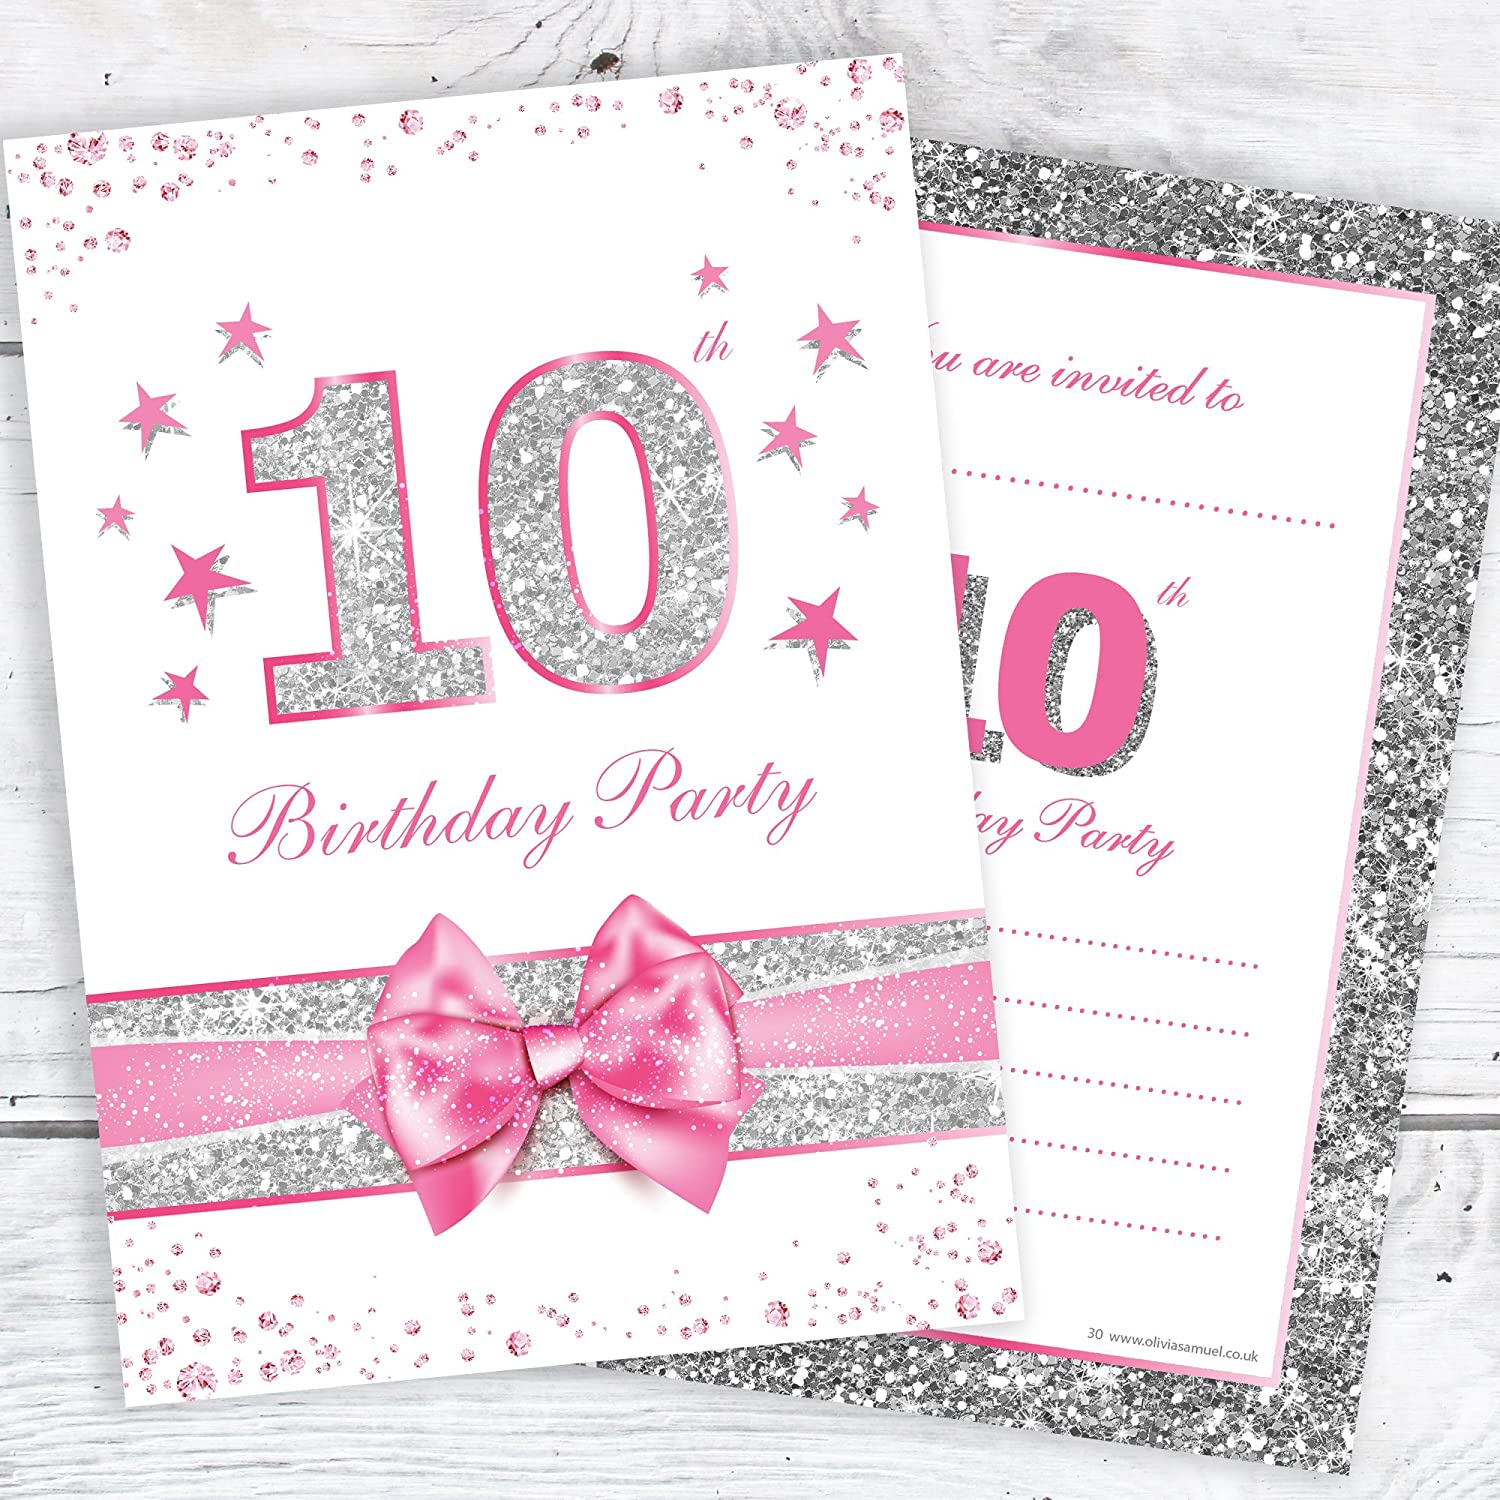 5th Birthday Party Invitations - Pink Sparkly Design and Faux Silver  Glitter - A5 Postcard Size with envelopes (Pack of 5)